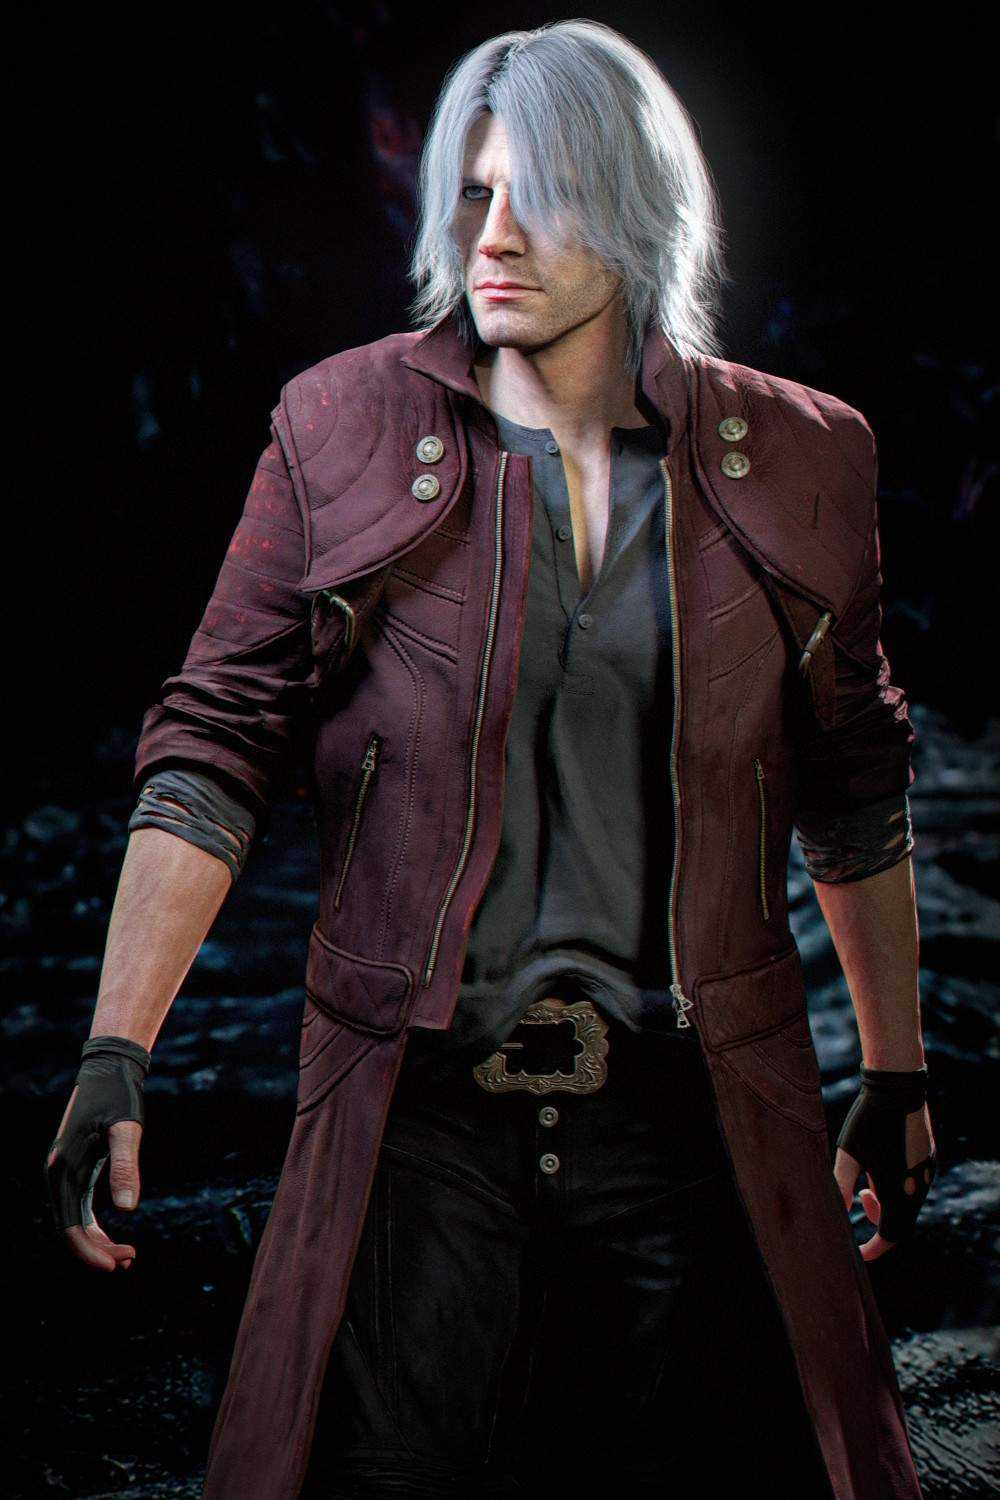 Dante Devil May Cry 5 Bundle For Genesis 8 Male